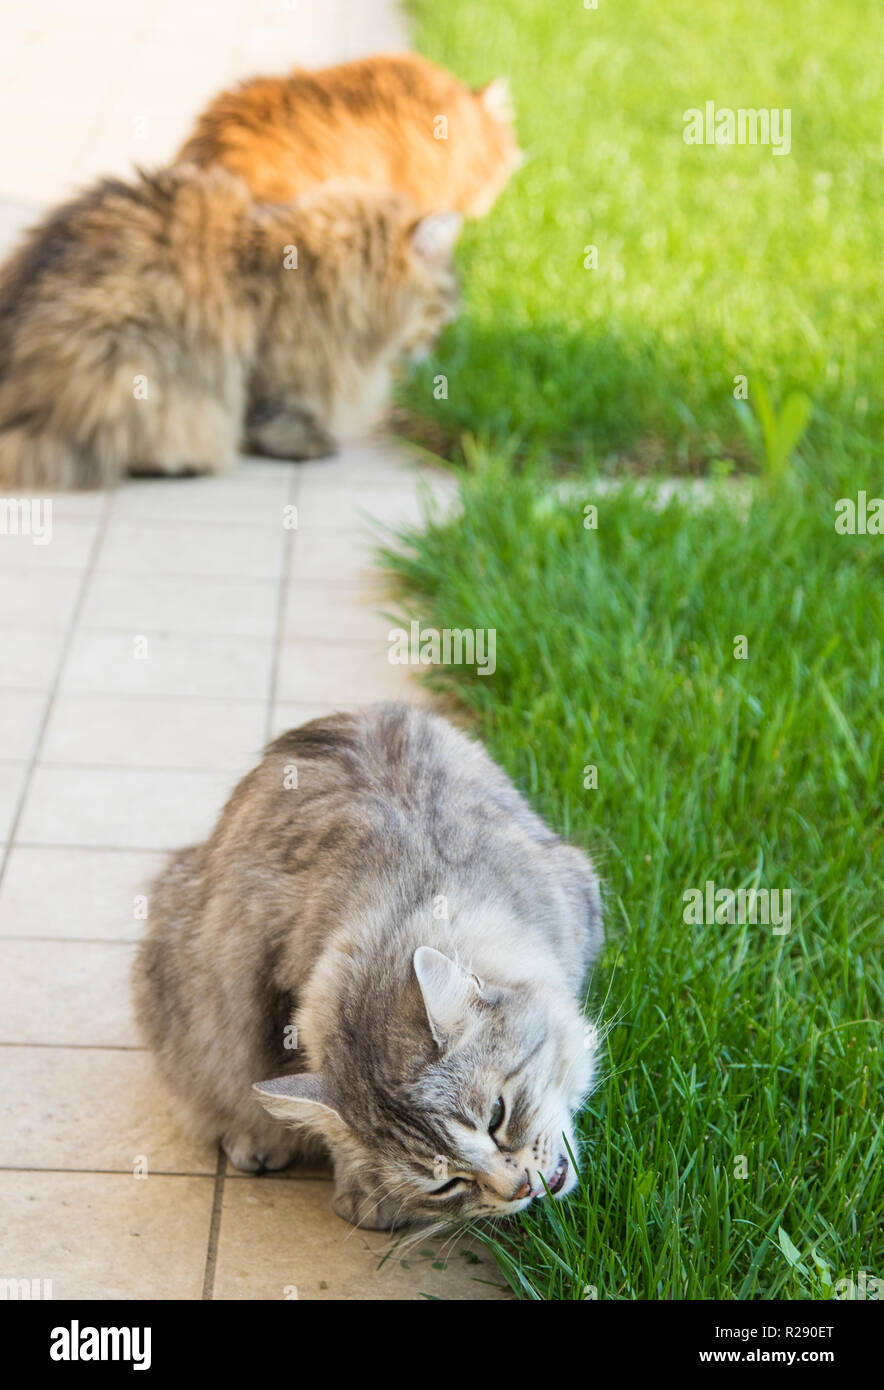 Adorable fluffy cats in a garden, siberian pets of livestock - Stock Image